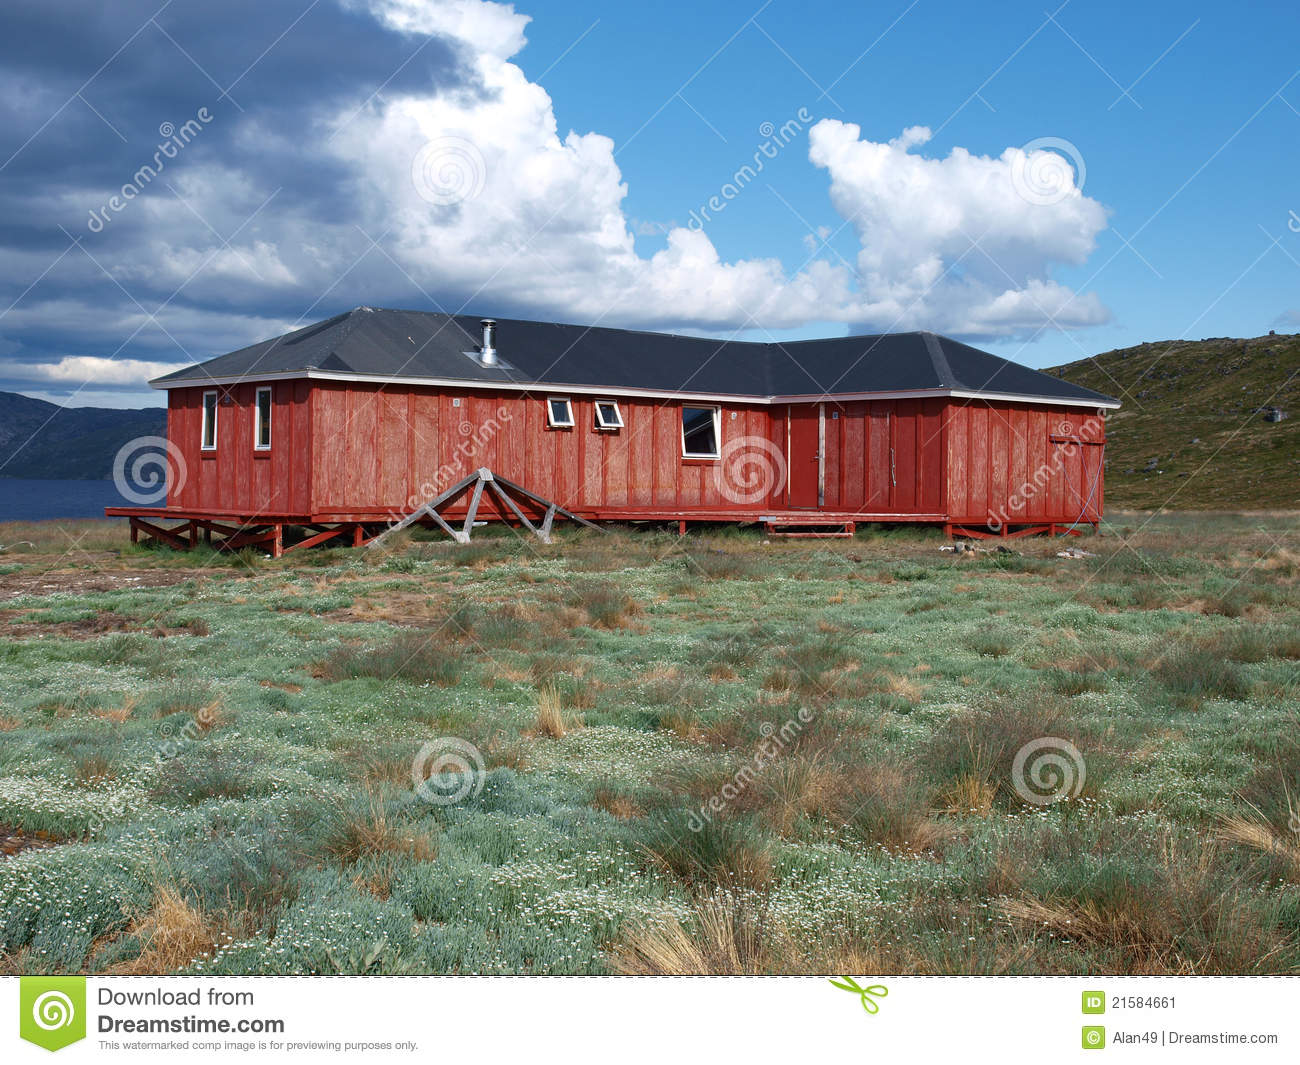 Download Arctic Circle Trail Hut, Greenland Stock Image - Image of greenland, center: 21584661